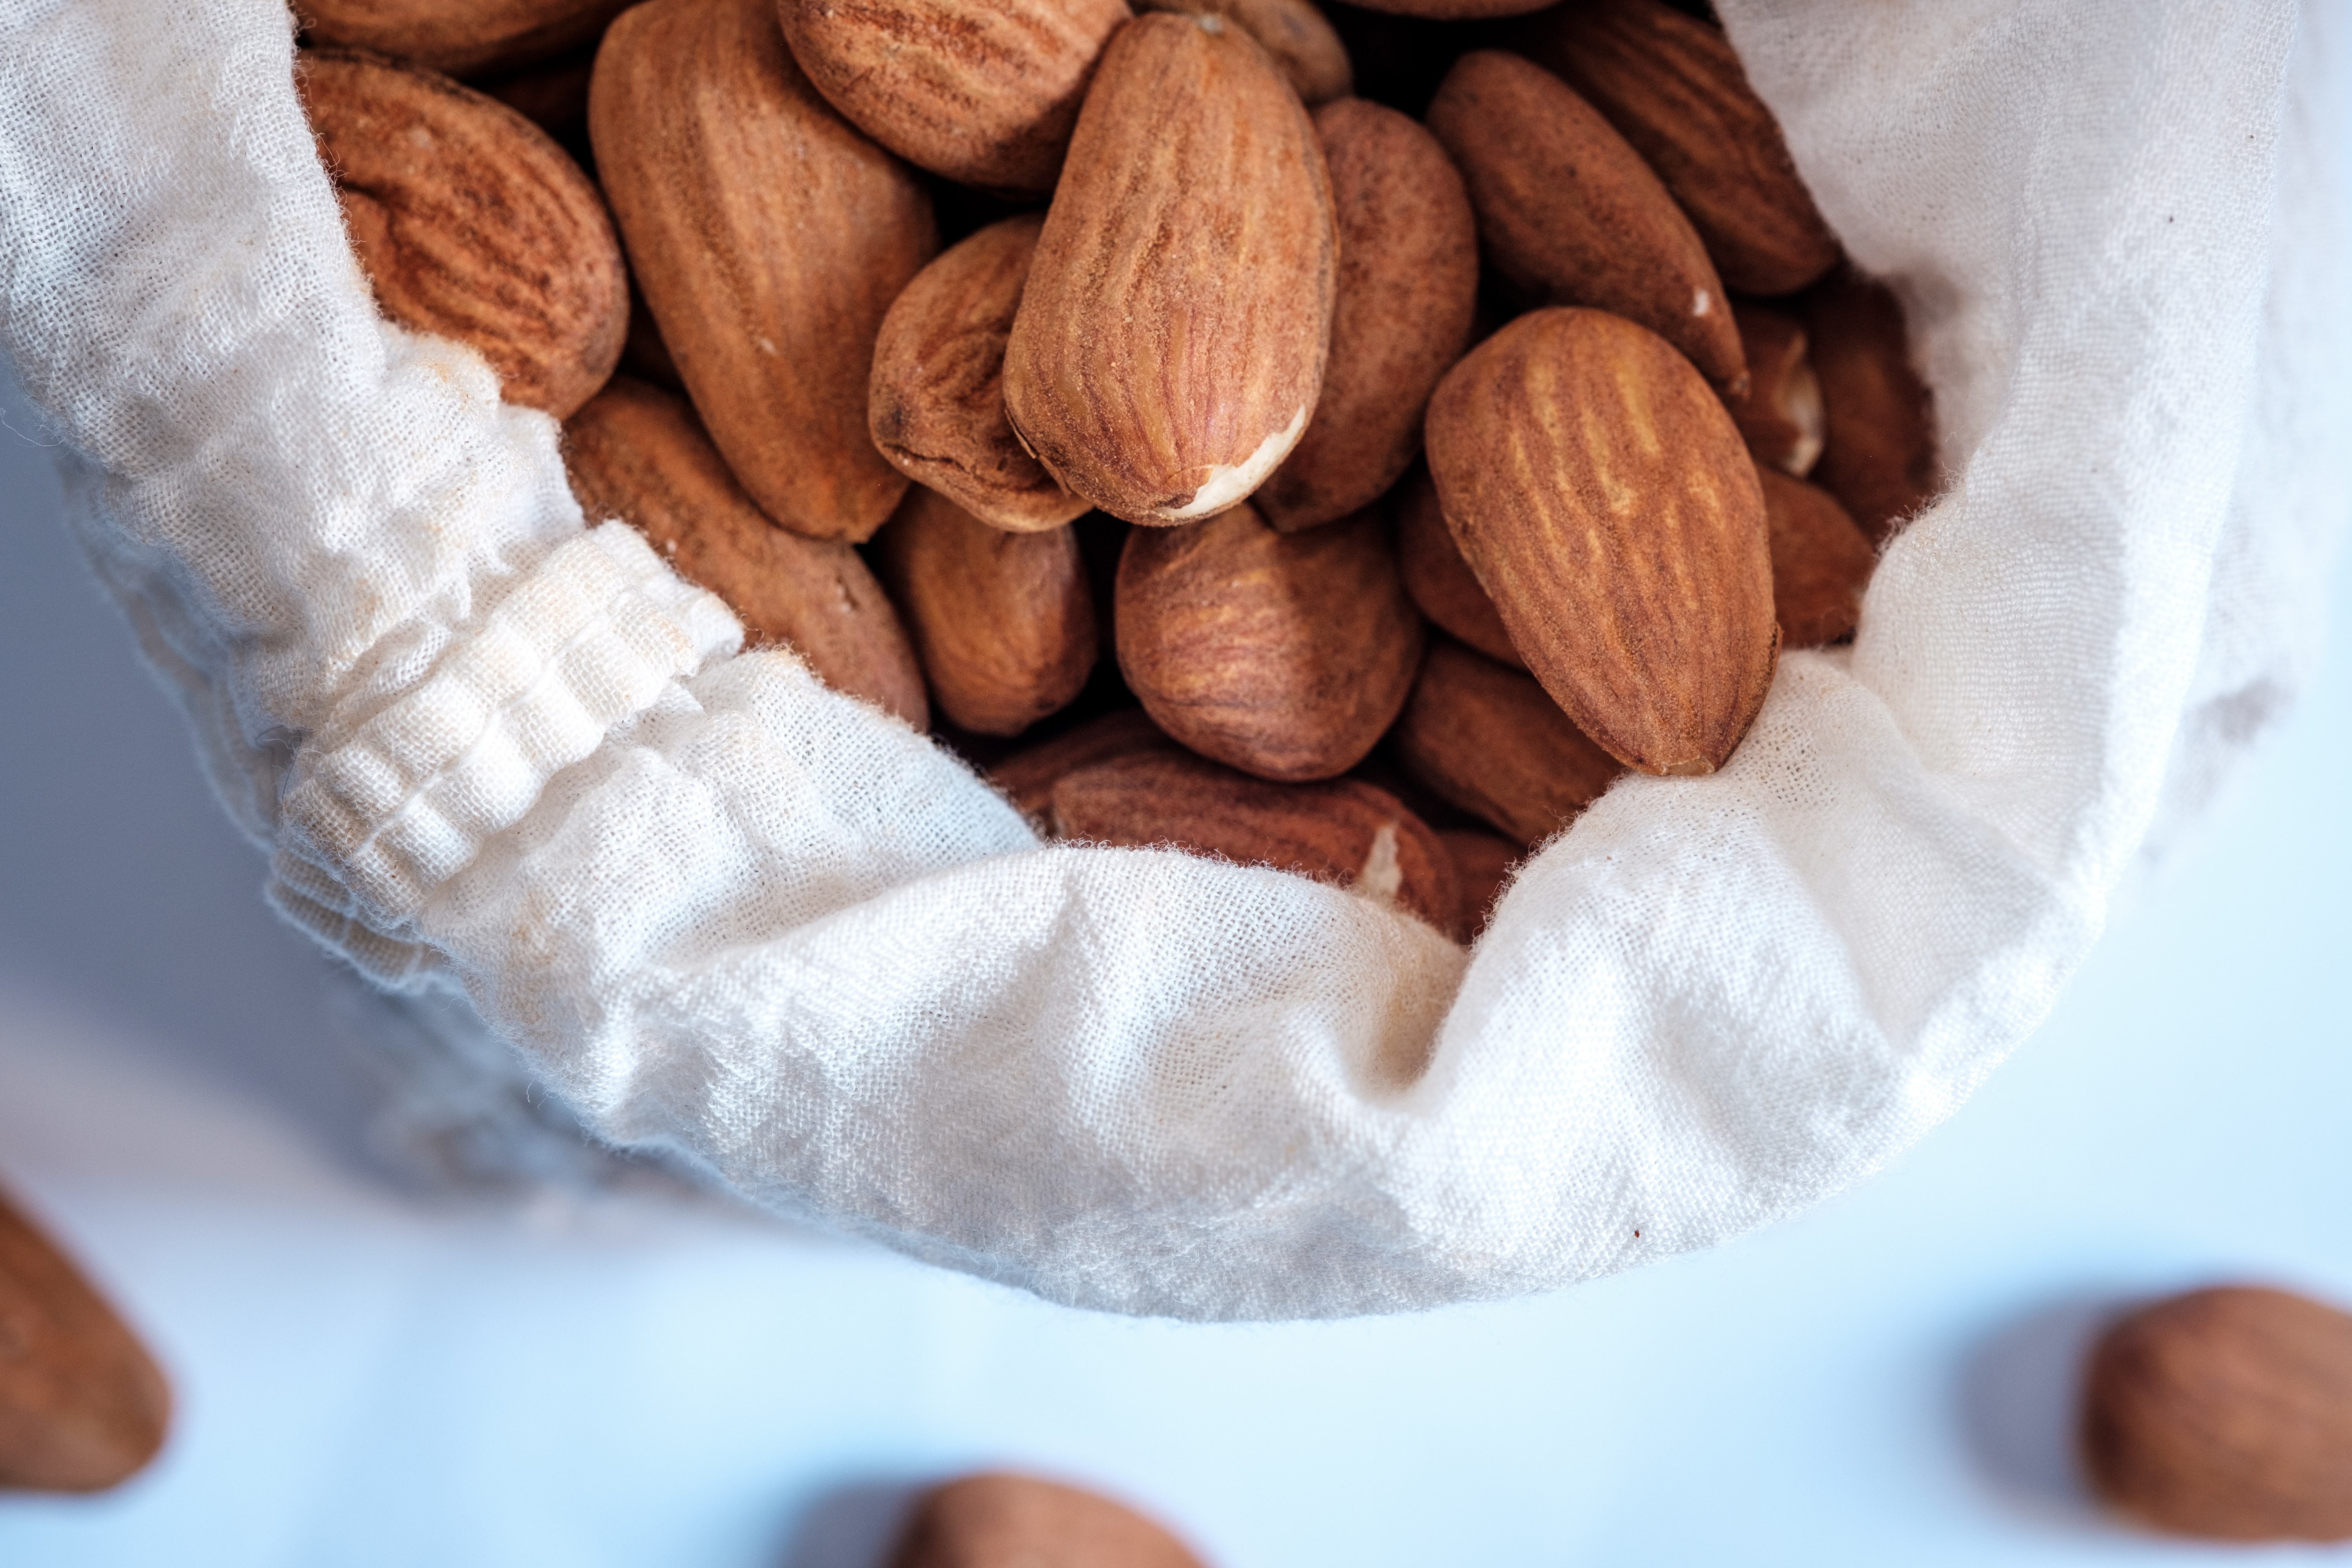 Almonds | IFIS Publishing